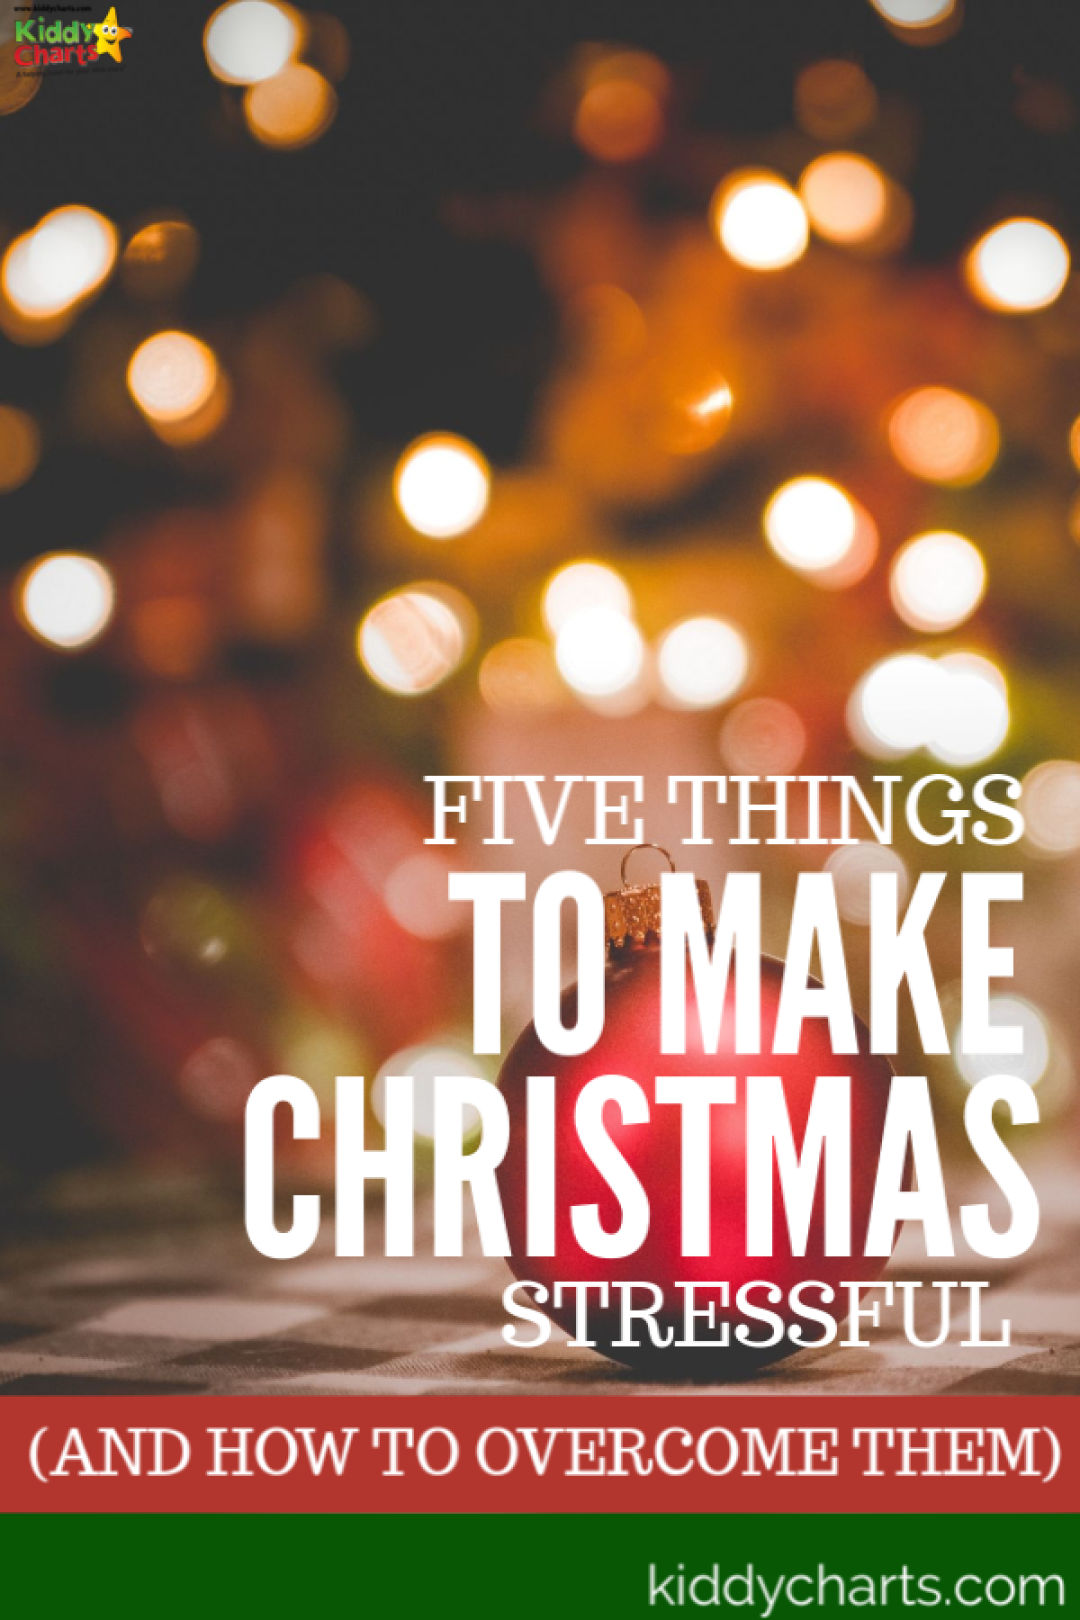 Is Christmas stressful for you as a family? We've got ideas to fix some of the common problems families have over the sfestive period some things are a little more fun! #christmas #stress #family #familytime